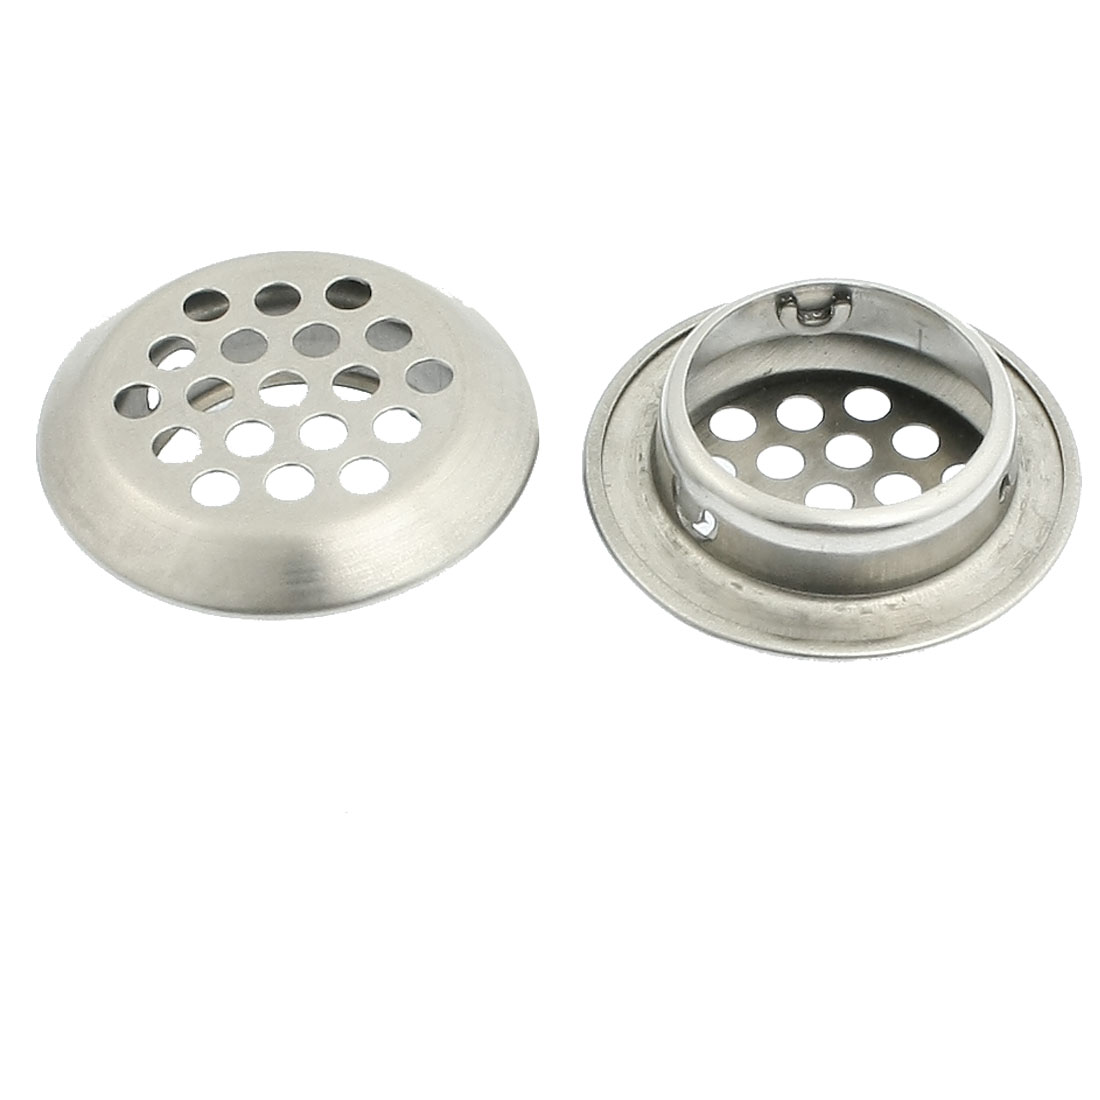 2 Pcs Silver Tone Stainless Steel 25mm Kitchen Sink Strainers